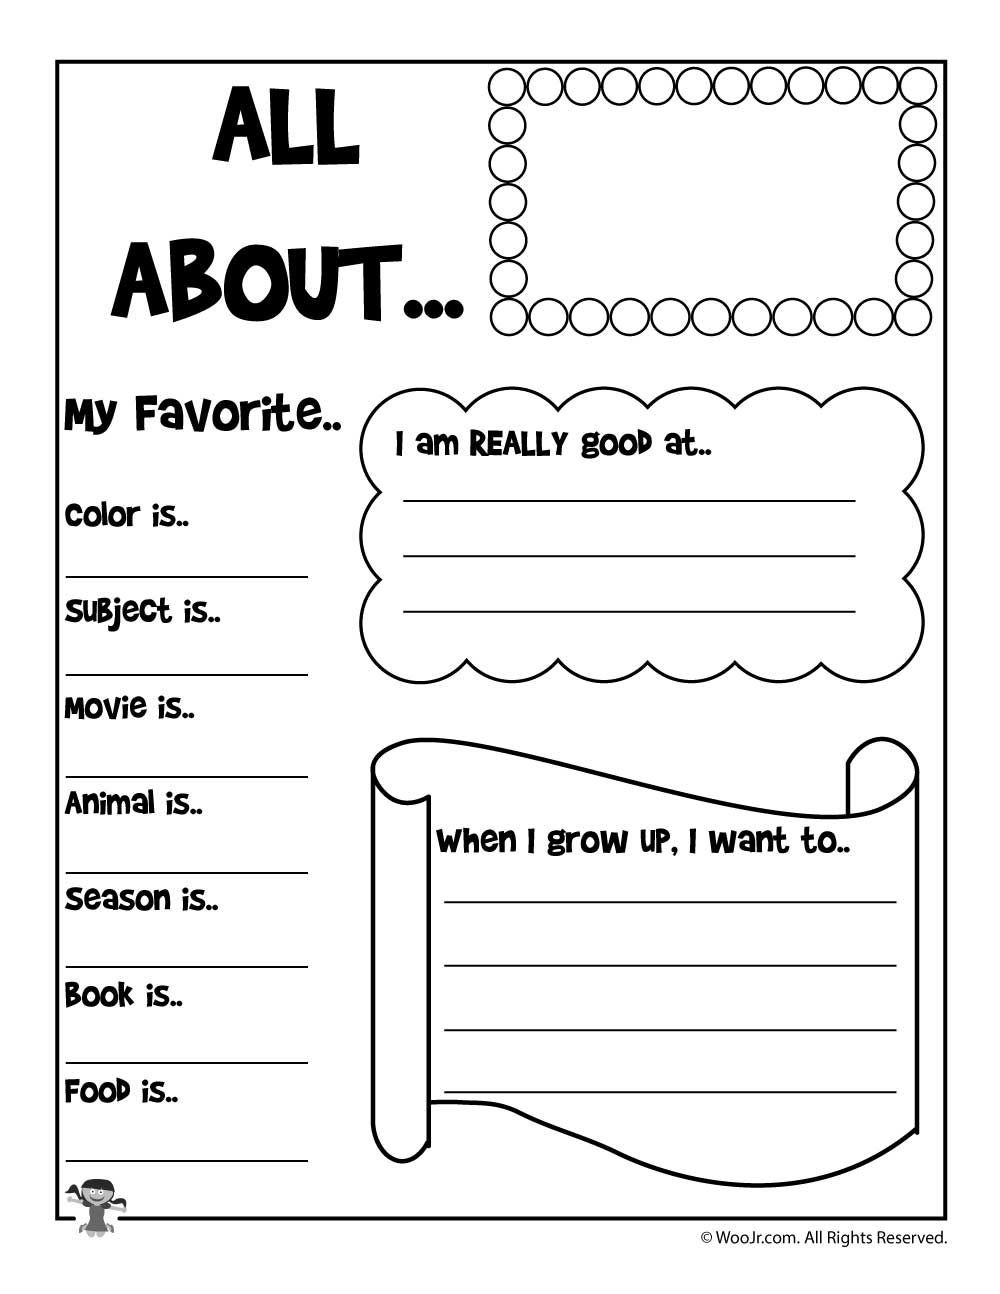 4th Grade Inferencing Worksheets Printable About Worksheets with All 4th Grade Work